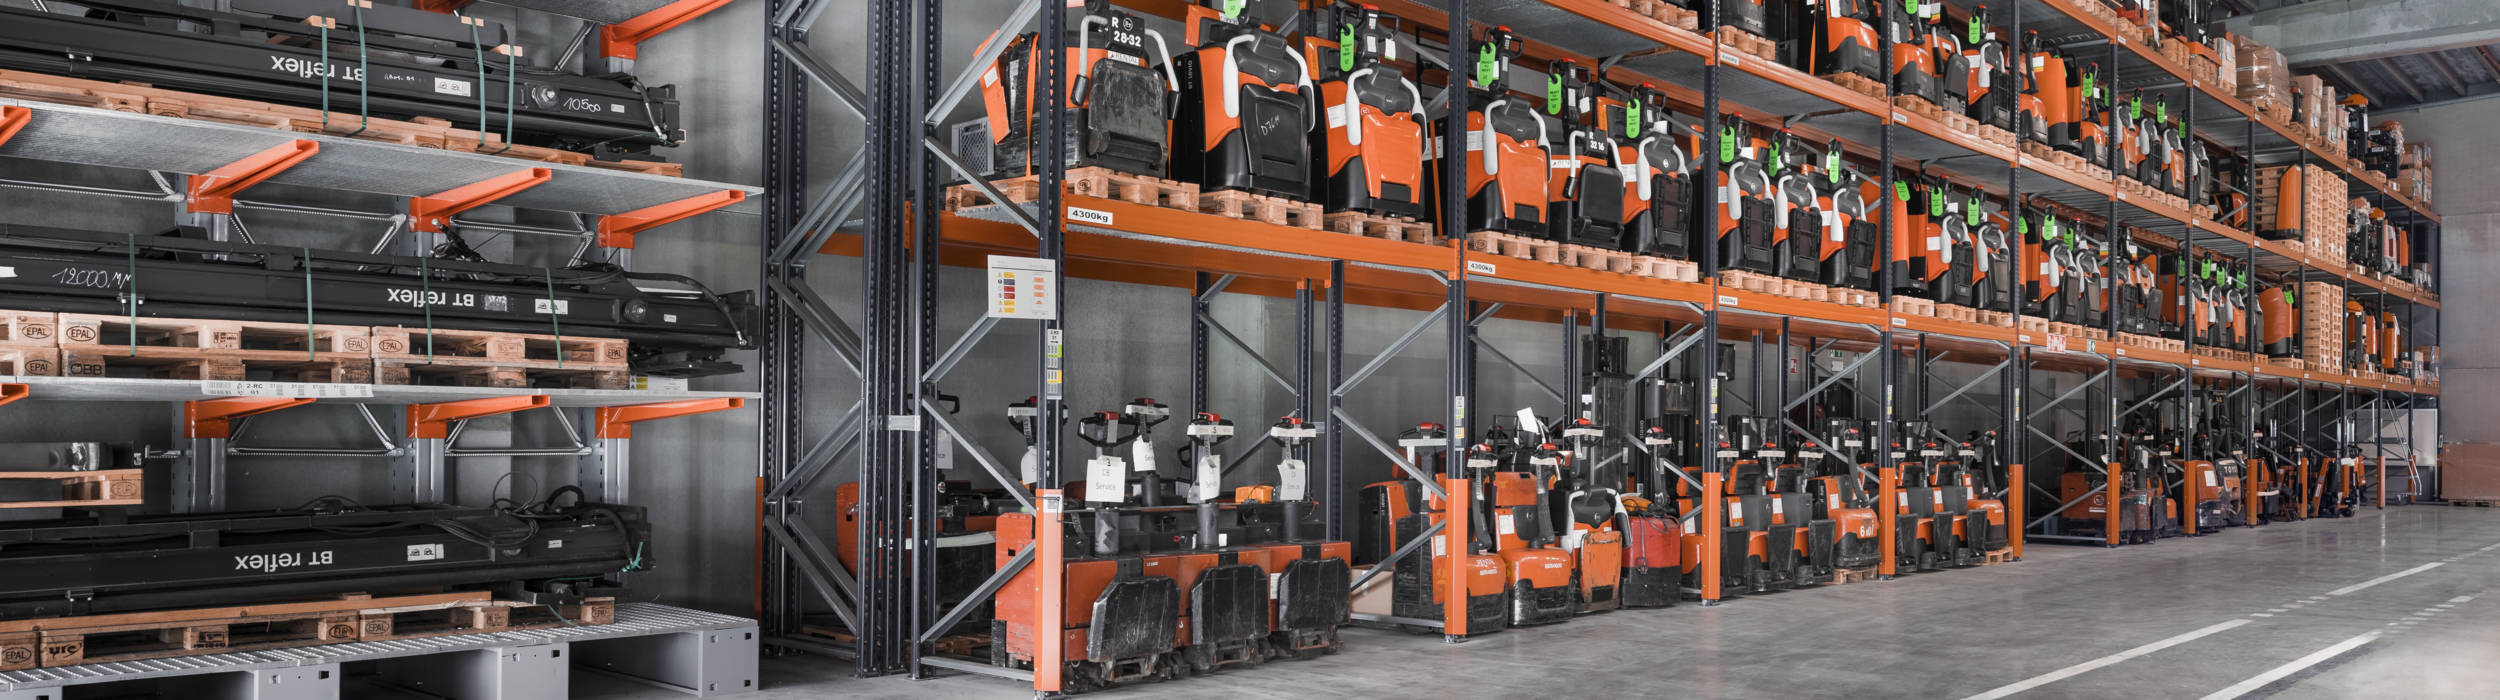 Check out our used catalogue, from warehouse trucks to counterbalanced trucks, all of them serviced and refurbished for a sustainable second life in your operation.